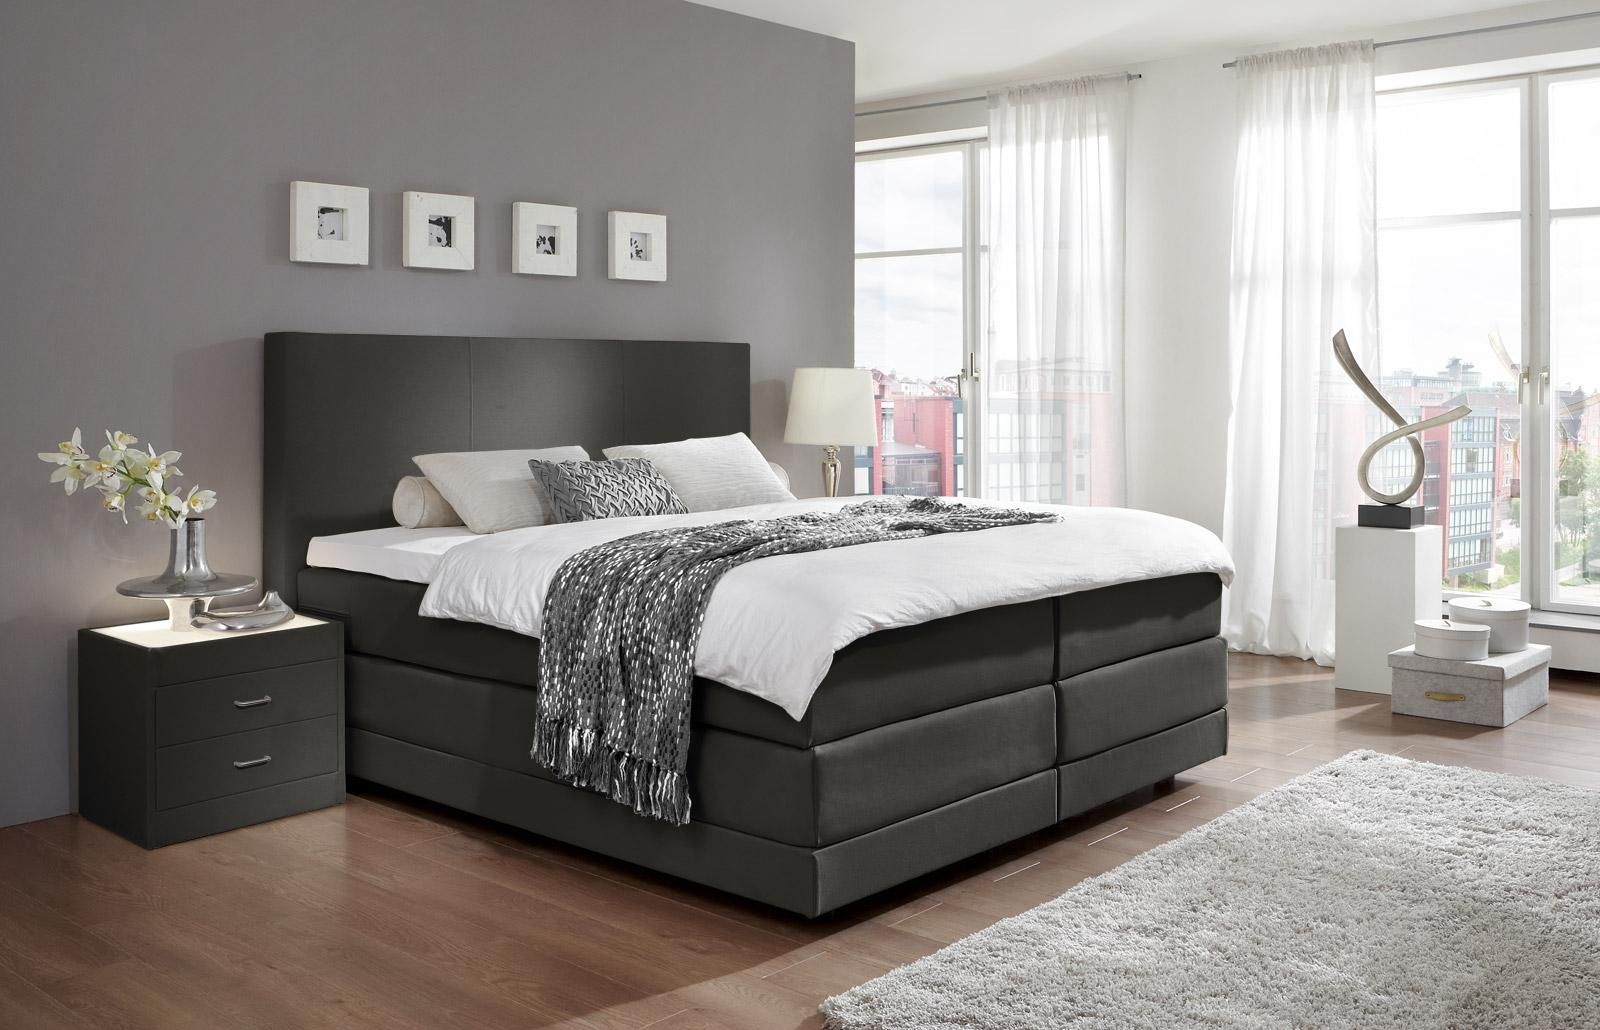 schlafzimmer boxspringbett komplett in 2019. Black Bedroom Furniture Sets. Home Design Ideas